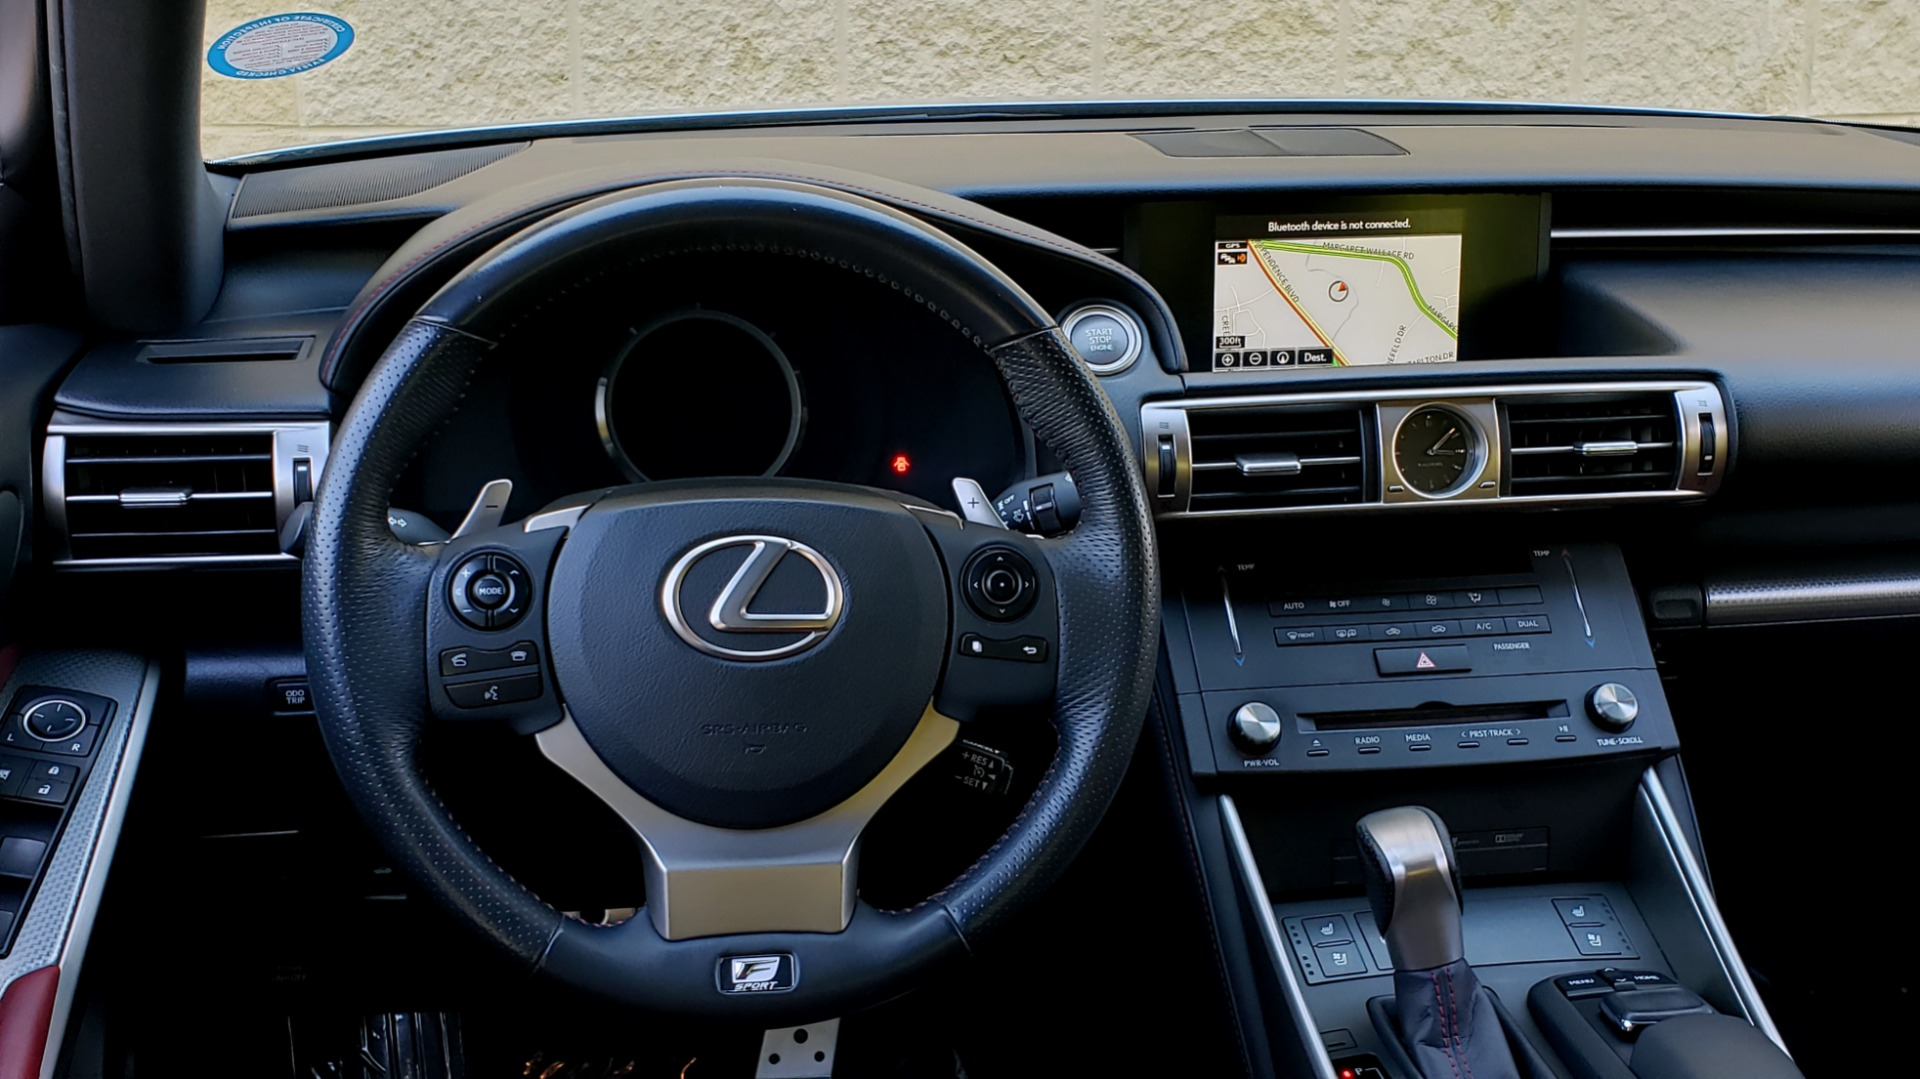 Used 2015 Lexus IS 350 F-SPORT / AWD / NAV / SUNROOF / BSM / REARVIEW for sale Sold at Formula Imports in Charlotte NC 28227 40